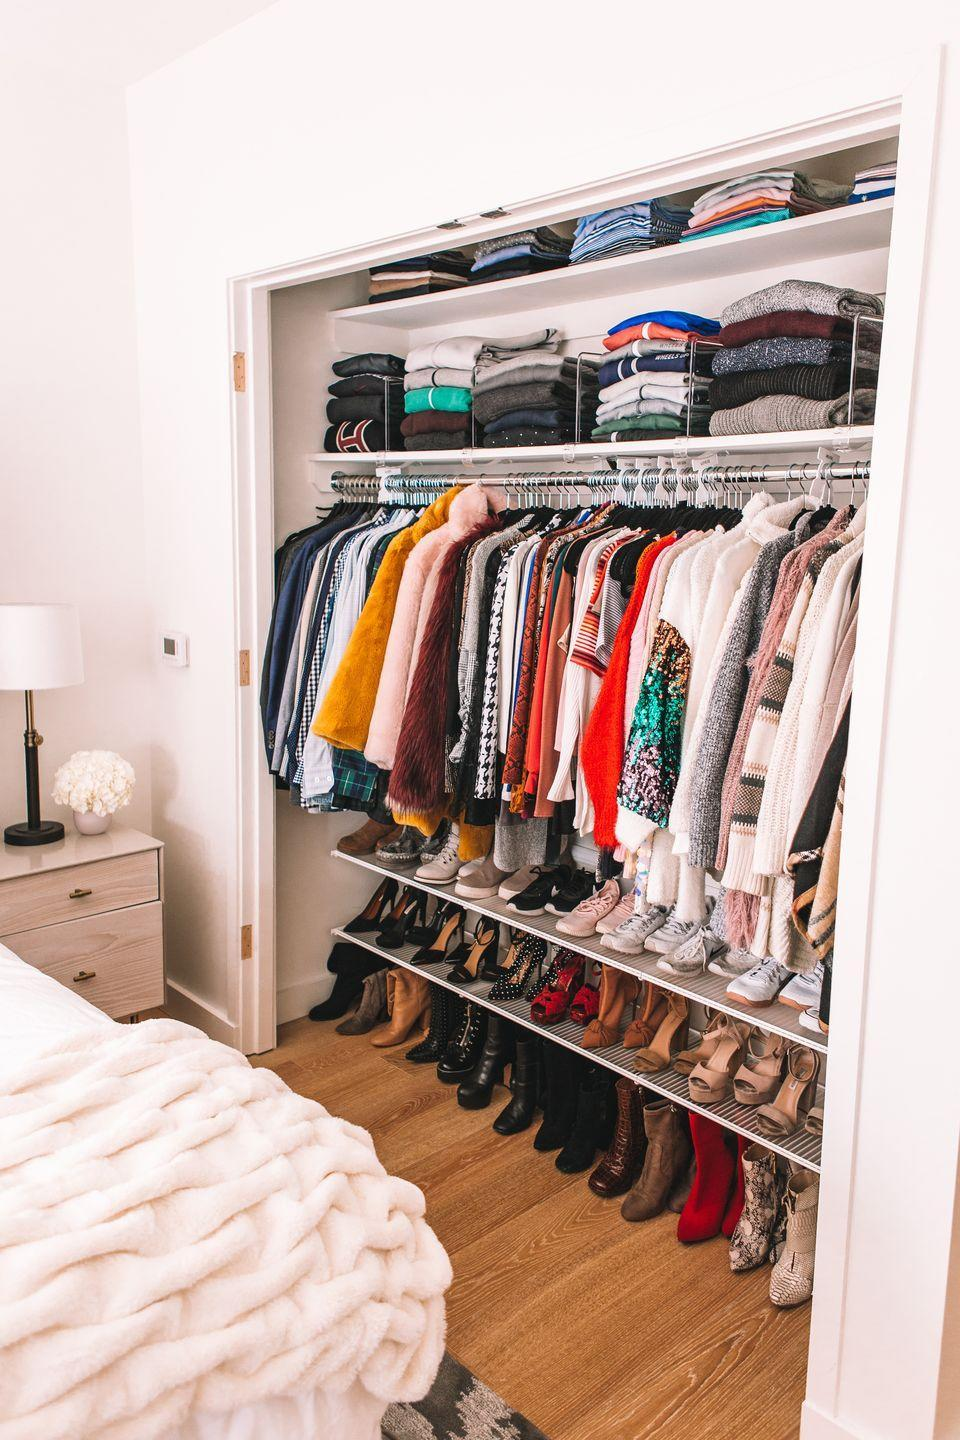 "<p>Most people under-utilize the vertical space in their closets. Put every inch to good use by adding shelves <em>alllllll</em> the way to the top to store lesser-used items, like blogger Olivia Rink did here in her New York City closet.</p><p>See more at <a href=""http://oliviarink.com/decor/organizing-my-nyc-apartment/"" rel=""nofollow noopener"" target=""_blank"" data-ylk=""slk:Olivia Rink"" class=""link rapid-noclick-resp"">Olivia Rink</a>. </p><p><a class=""link rapid-noclick-resp"" href=""https://www.amazon.com/ClosetMaid-5631-SuperSlide-Ventilated-12-Inch/dp/B0014CT6CQ/ref=sxin_3_ac_d_pm?tag=syn-yahoo-20&ascsubtag=%5Bartid%7C10072.g.29994972%5Bsrc%7Cyahoo-us"" rel=""nofollow noopener"" target=""_blank"" data-ylk=""slk:SHOP SHELVING"">SHOP SHELVING</a></p>"